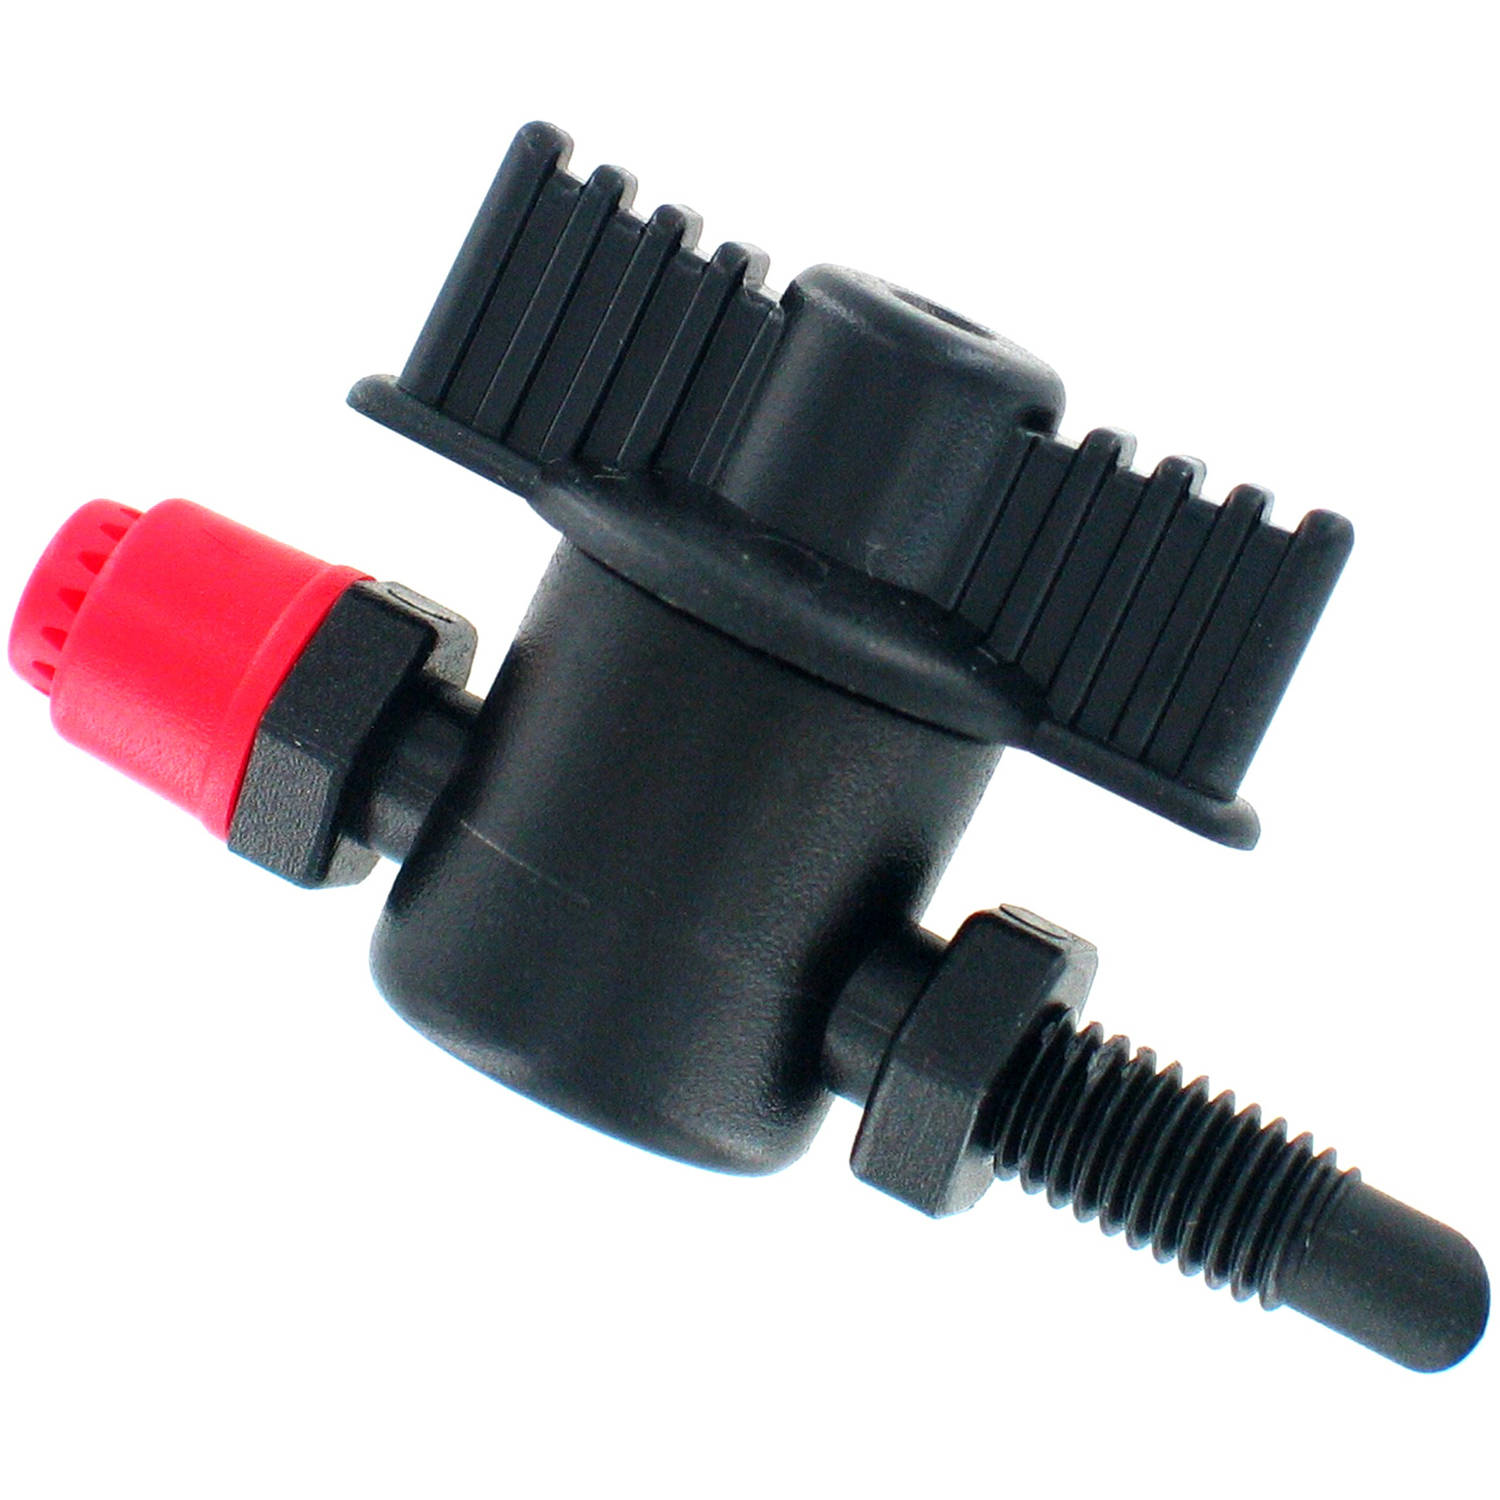 Toro 53846 Full Pattern Adjustable Micro-Spray Nozzle 2 Count